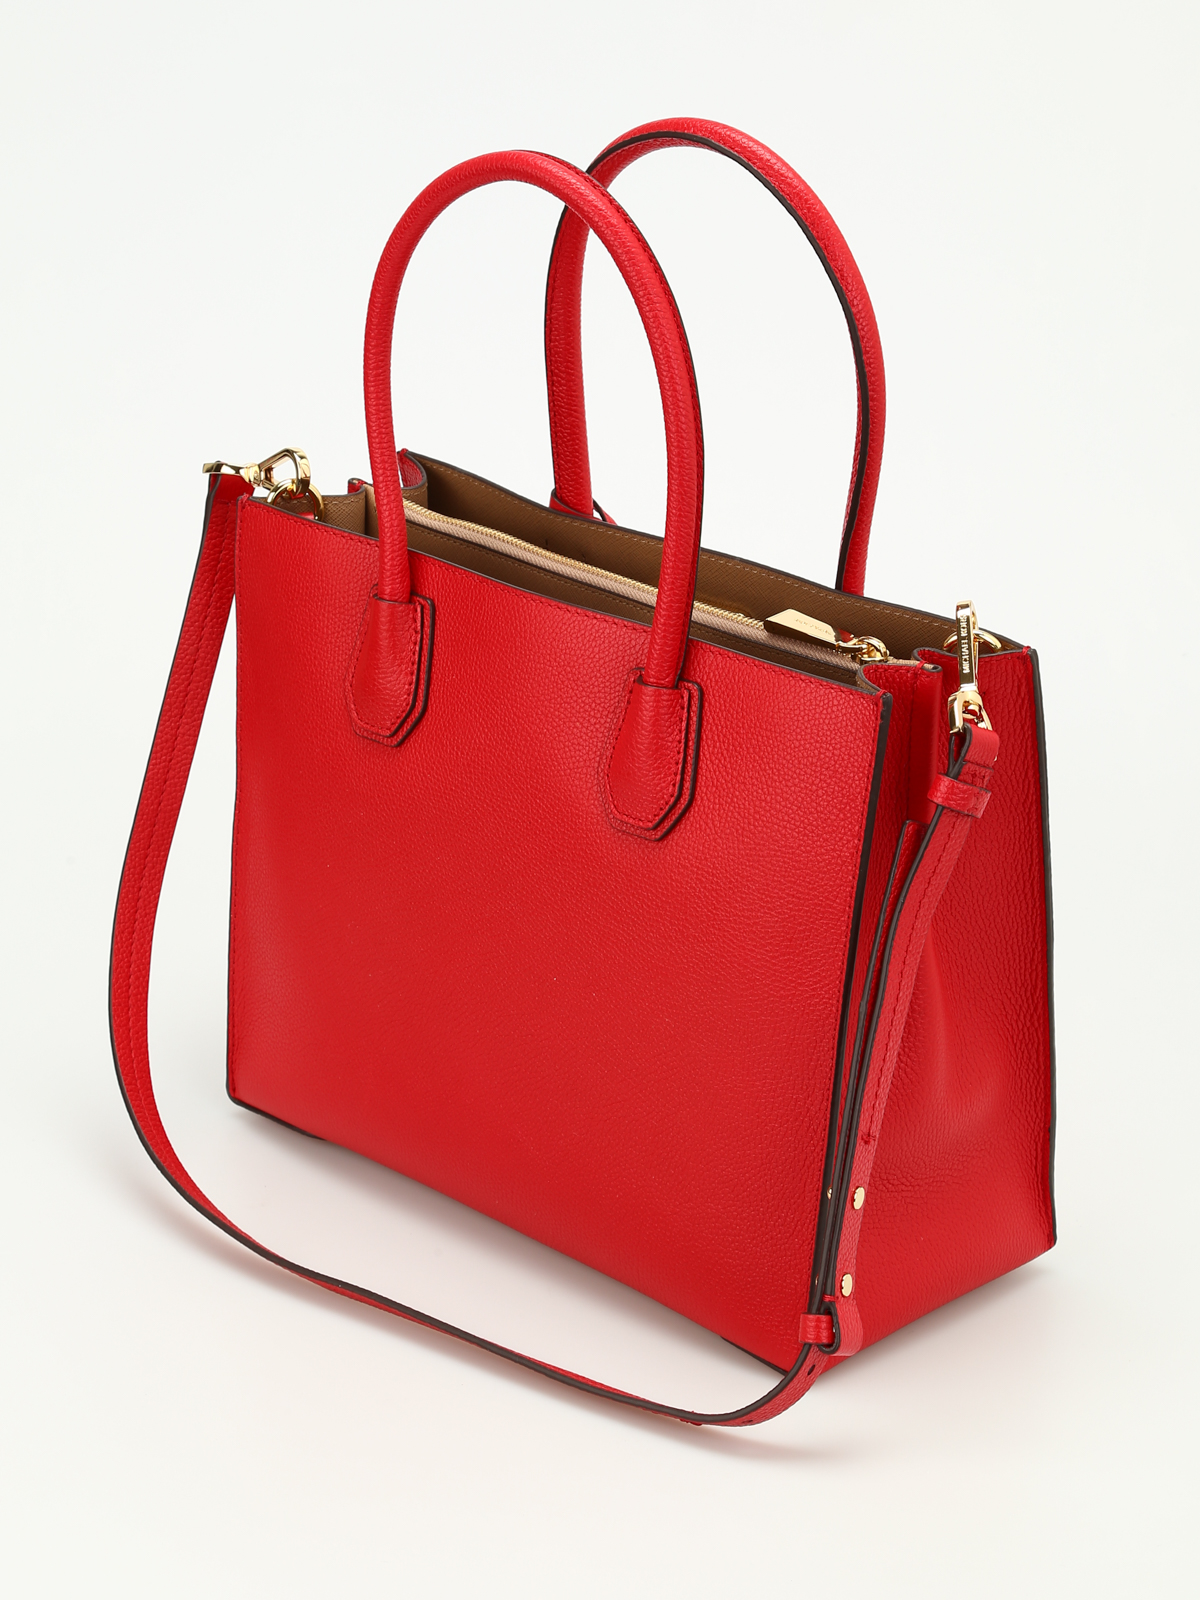 300d39fcd29aab Michael Kors - Mercer leather large tote - totes bags - 30F6GM9T3L 204